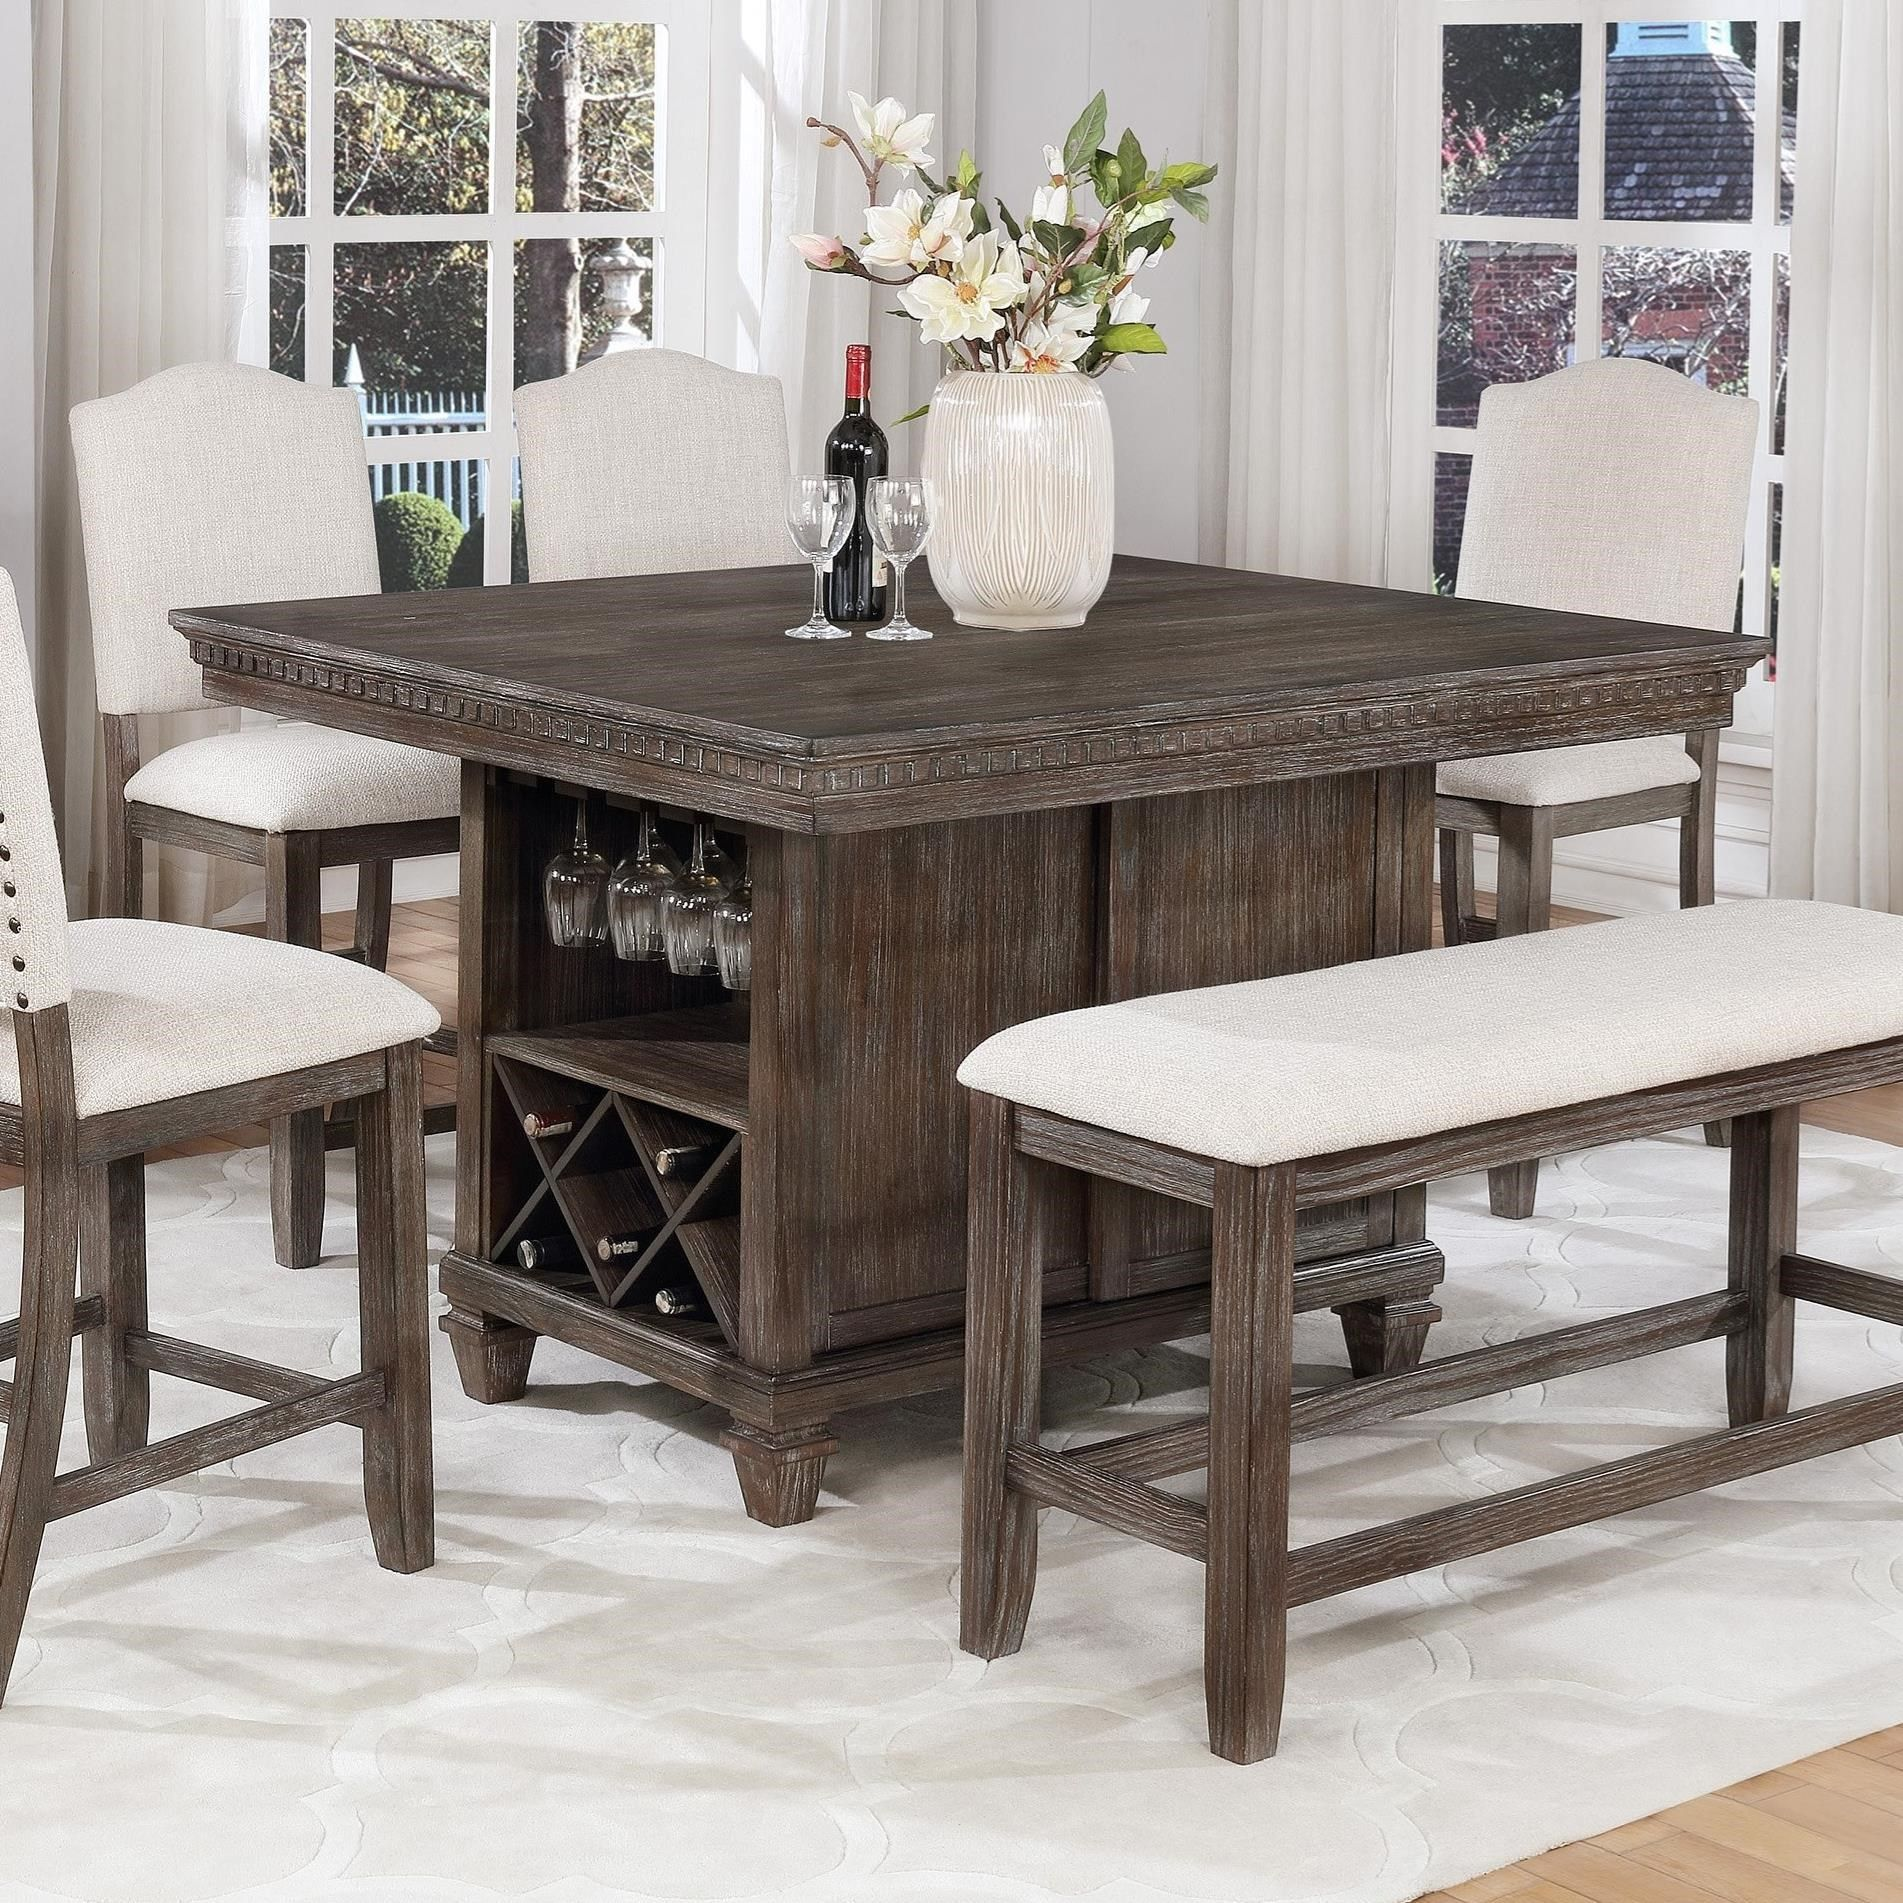 Regent Counter Height Table With Built In Wine Storage By Crown